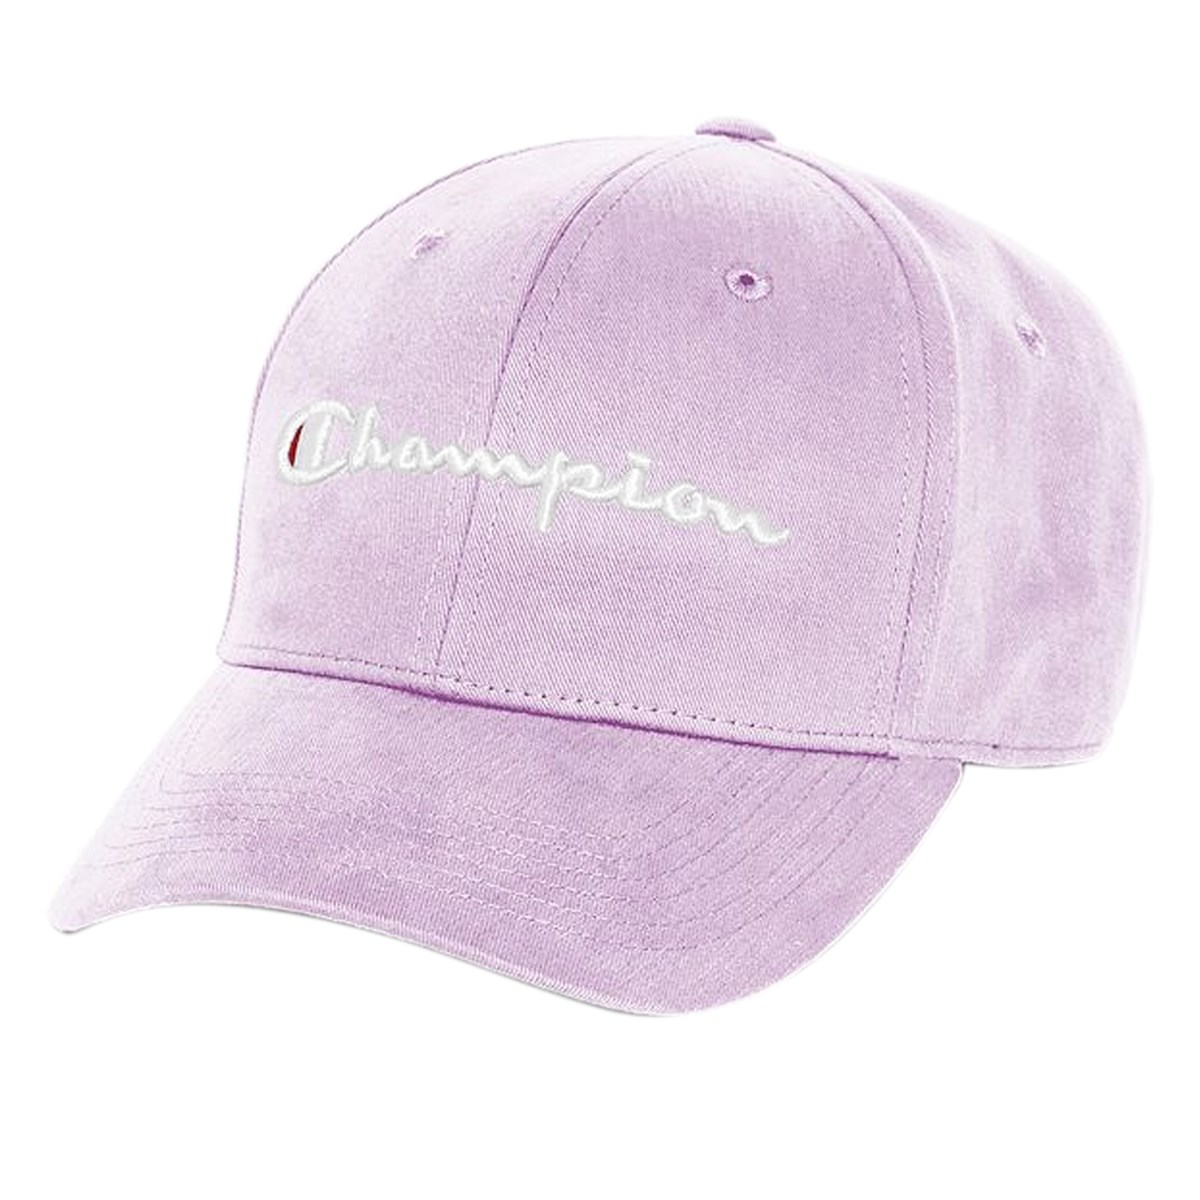 Classic Twill Hat in Violet